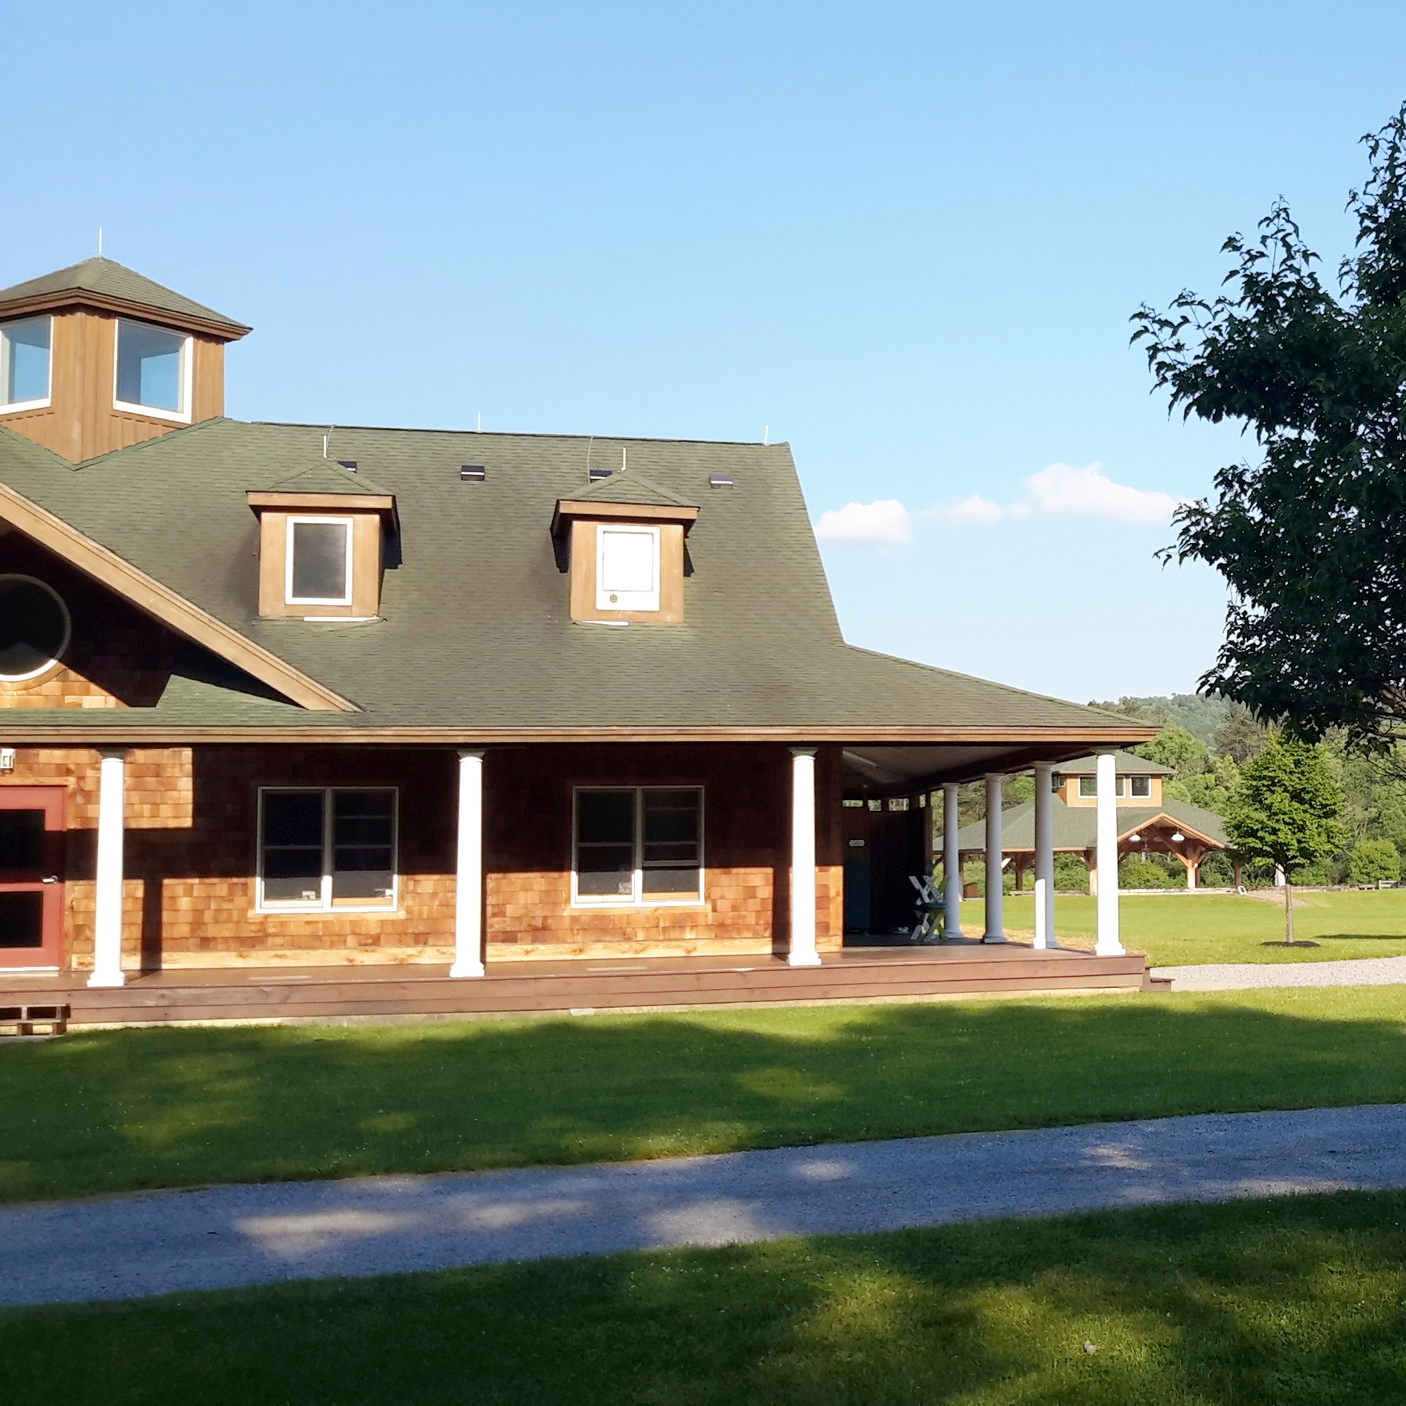 Camp Fiver in Poolville, NY